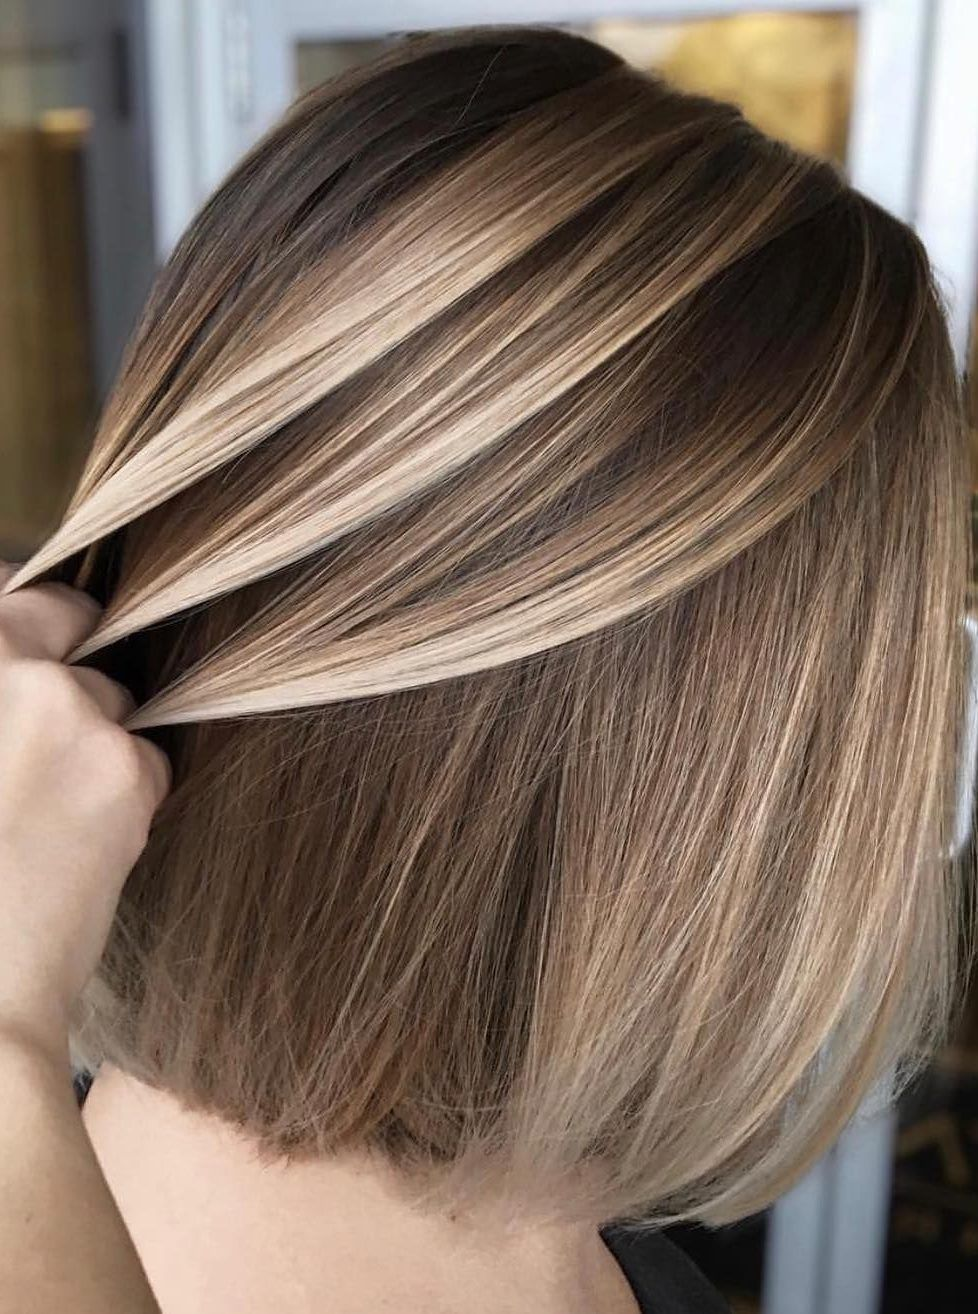 50 Gorgeous Balayage Hair Color Ideas For Blonde Short Straight Hair Short Straight Hair Is Perfect For Short Hair Balayage Balayage Hair Brunette Hair Color